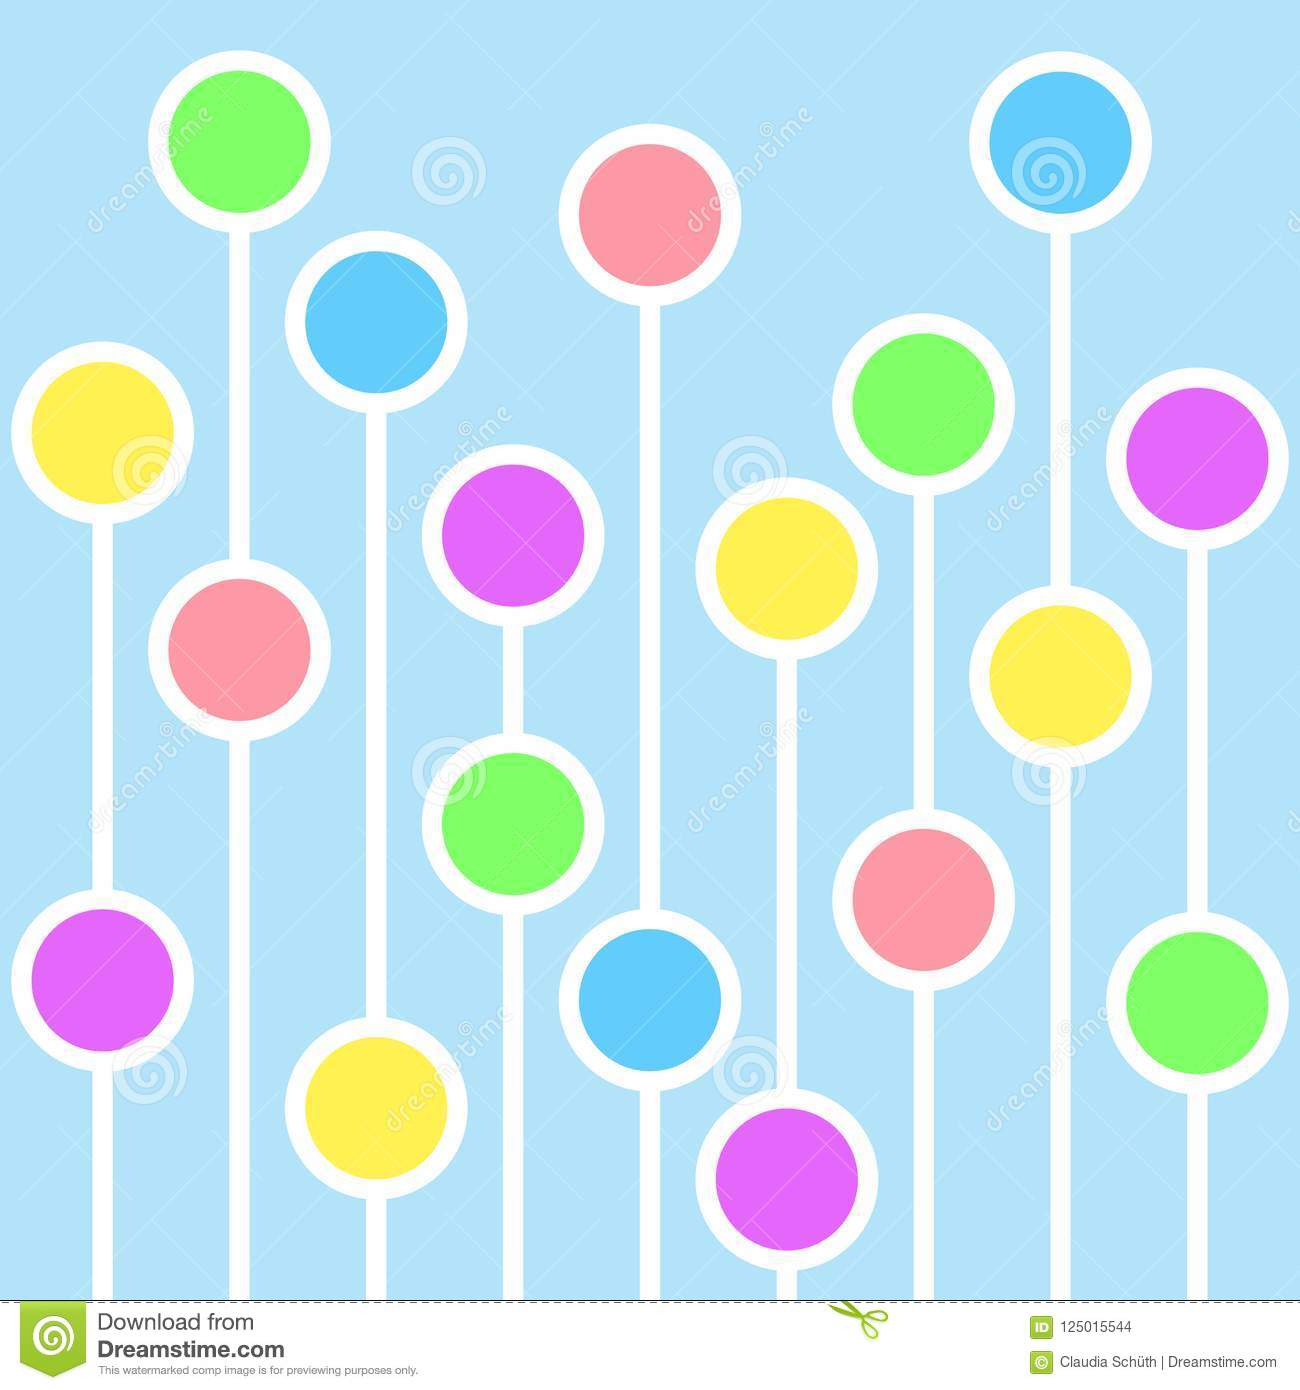 Abstract background with circles and white lines.